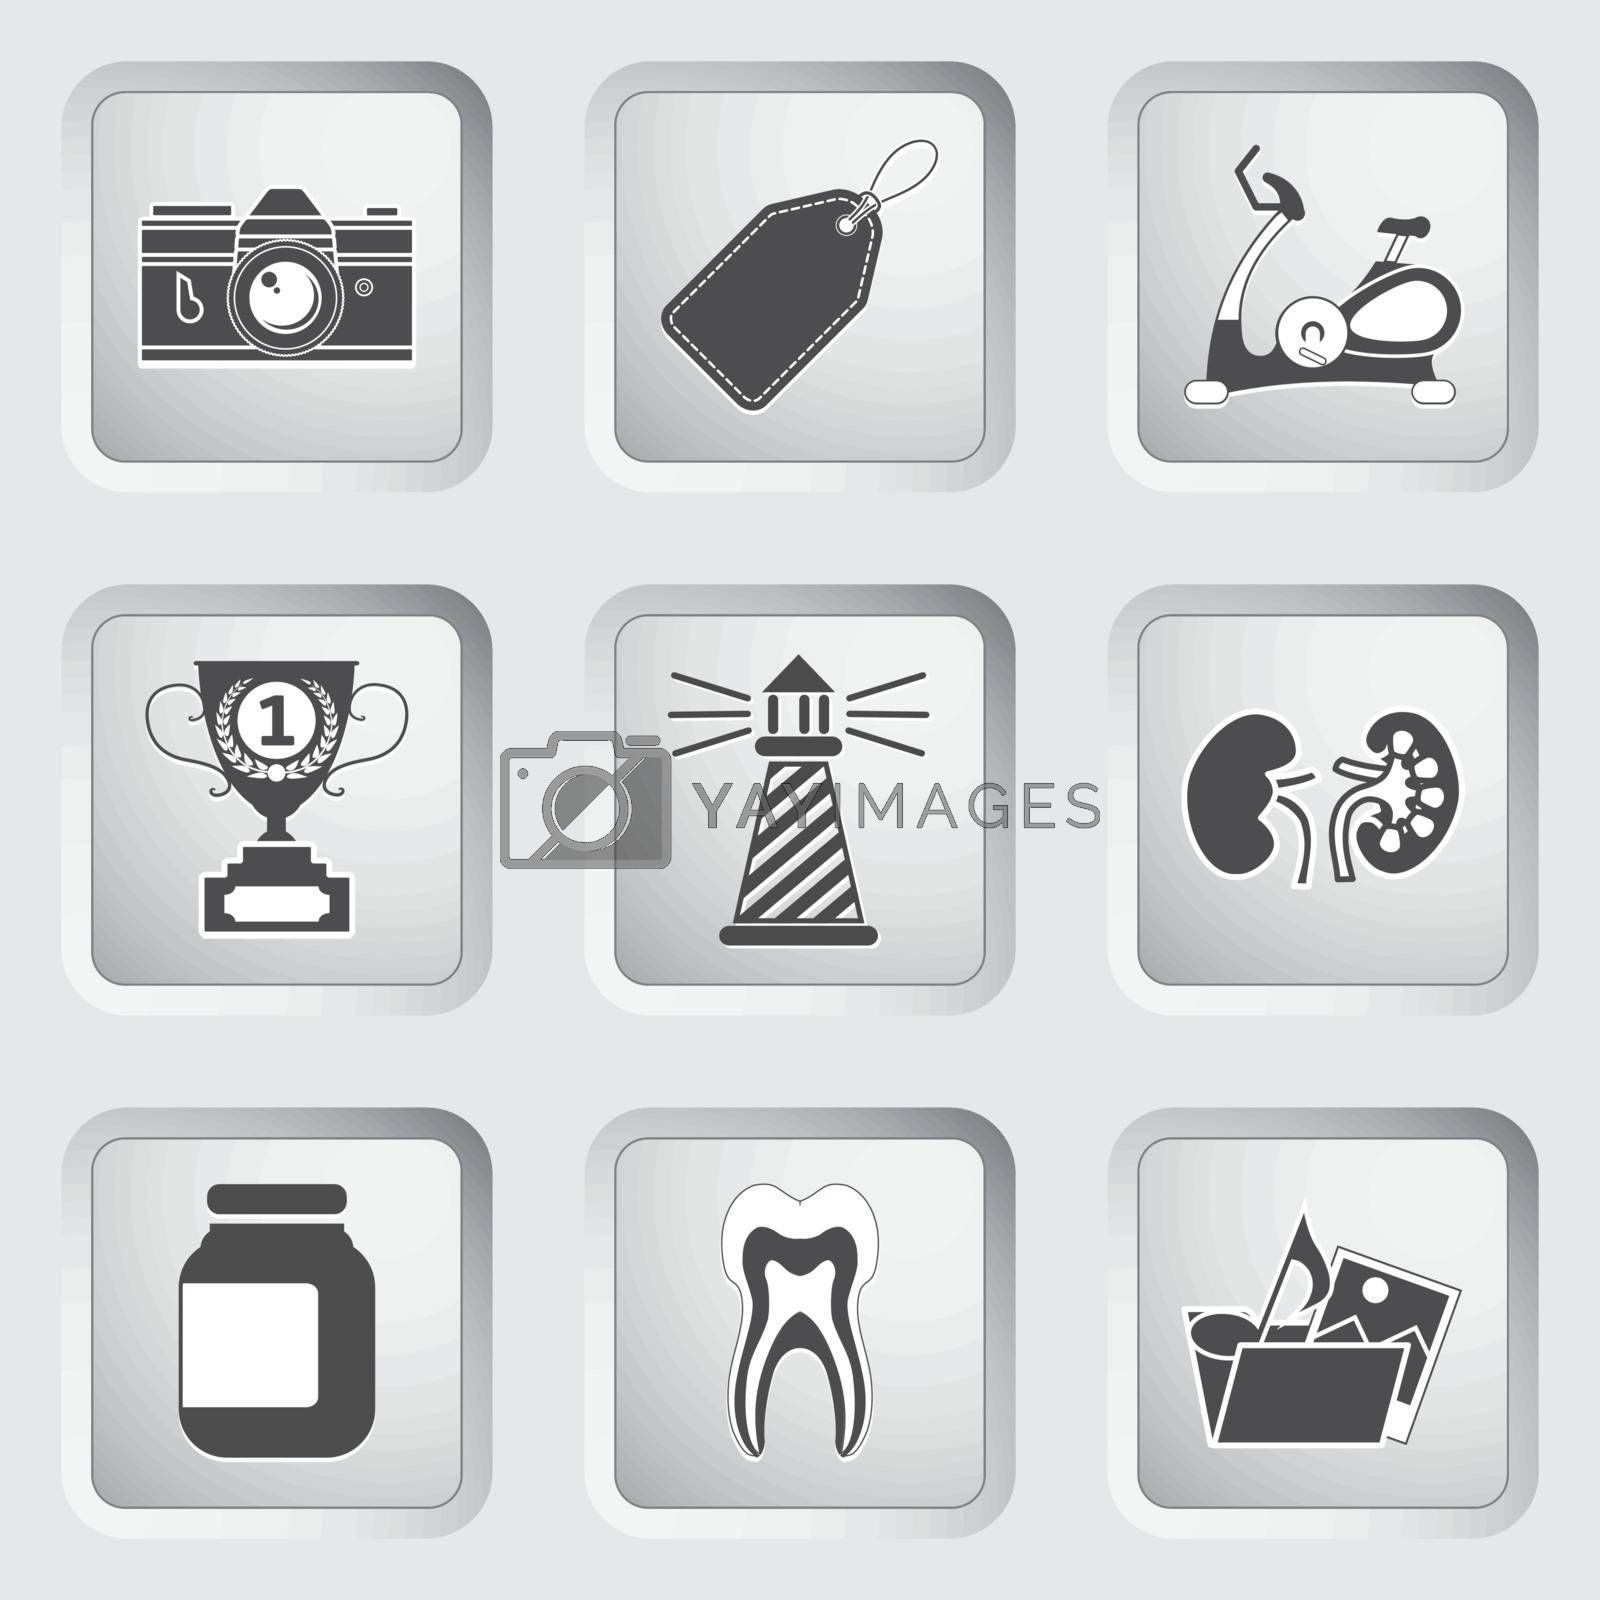 Icons on the buttons for Web Design and Mobile Applications Set 9. Vector illustration.